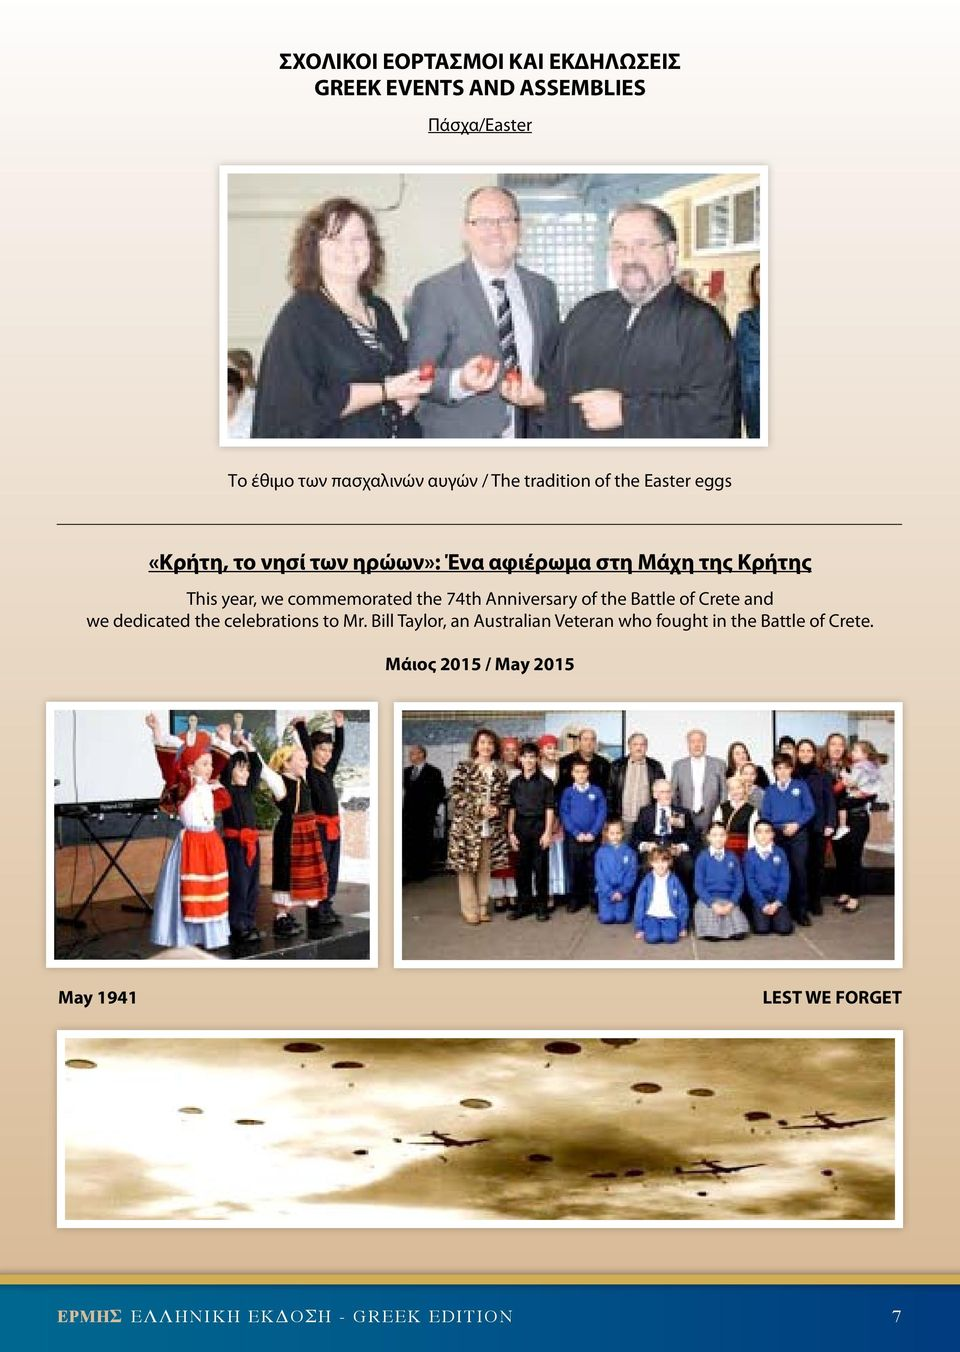 the 74th Anniversary of the Battle of Crete and we dedicated the celebrations to Mr.